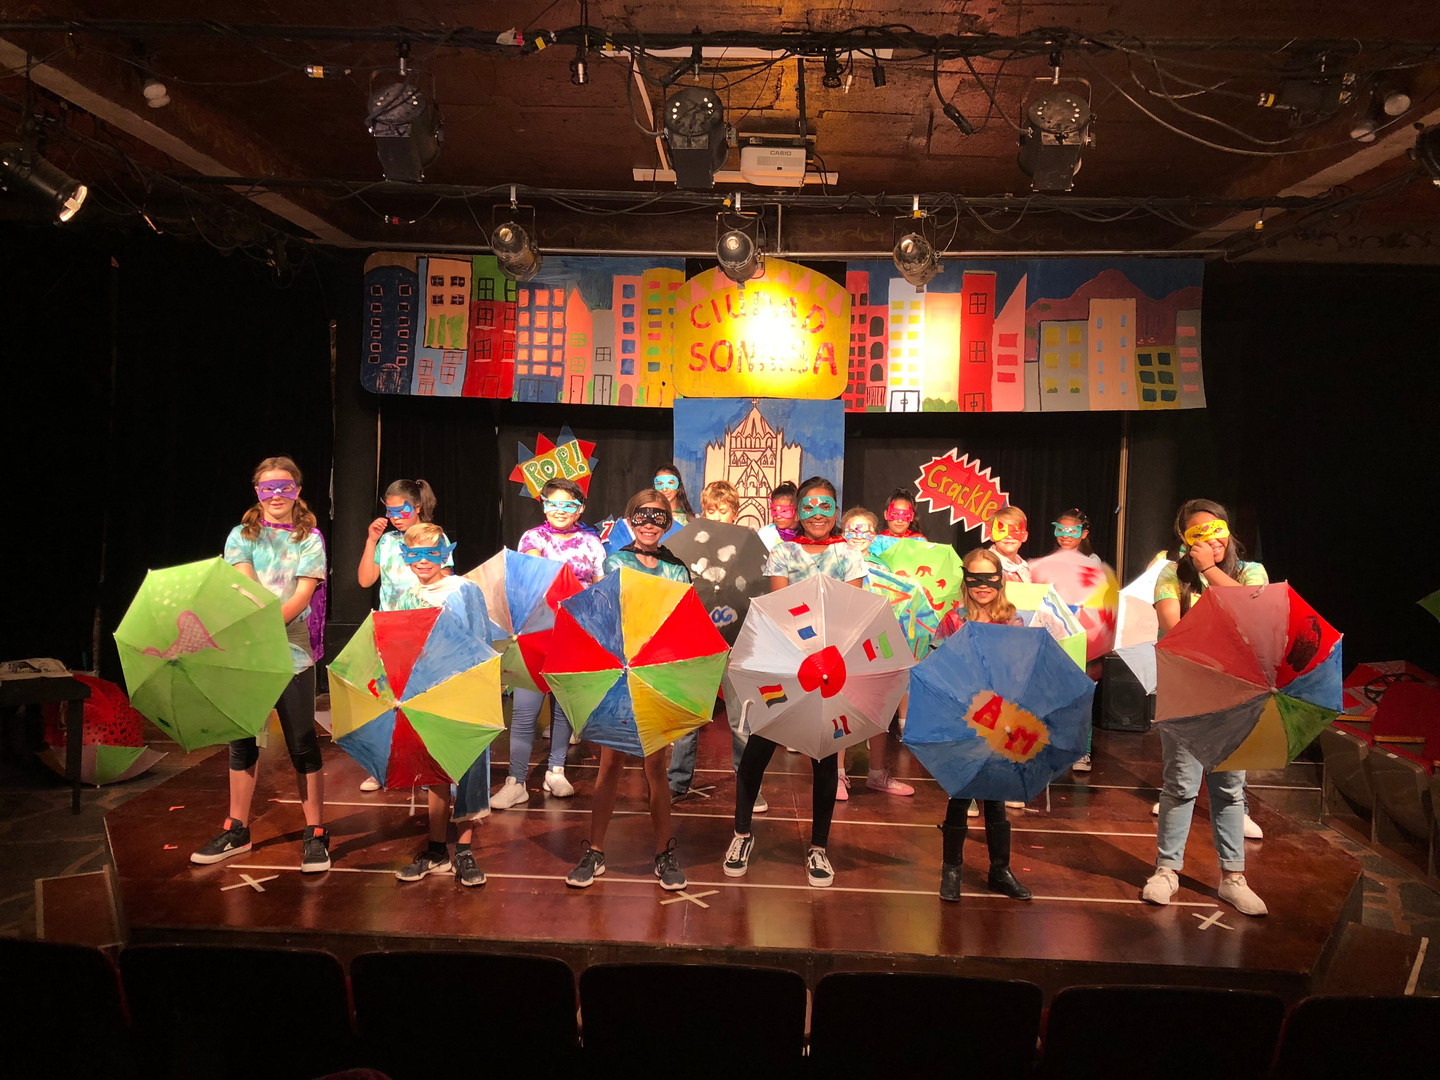 Musical number with umbrellas